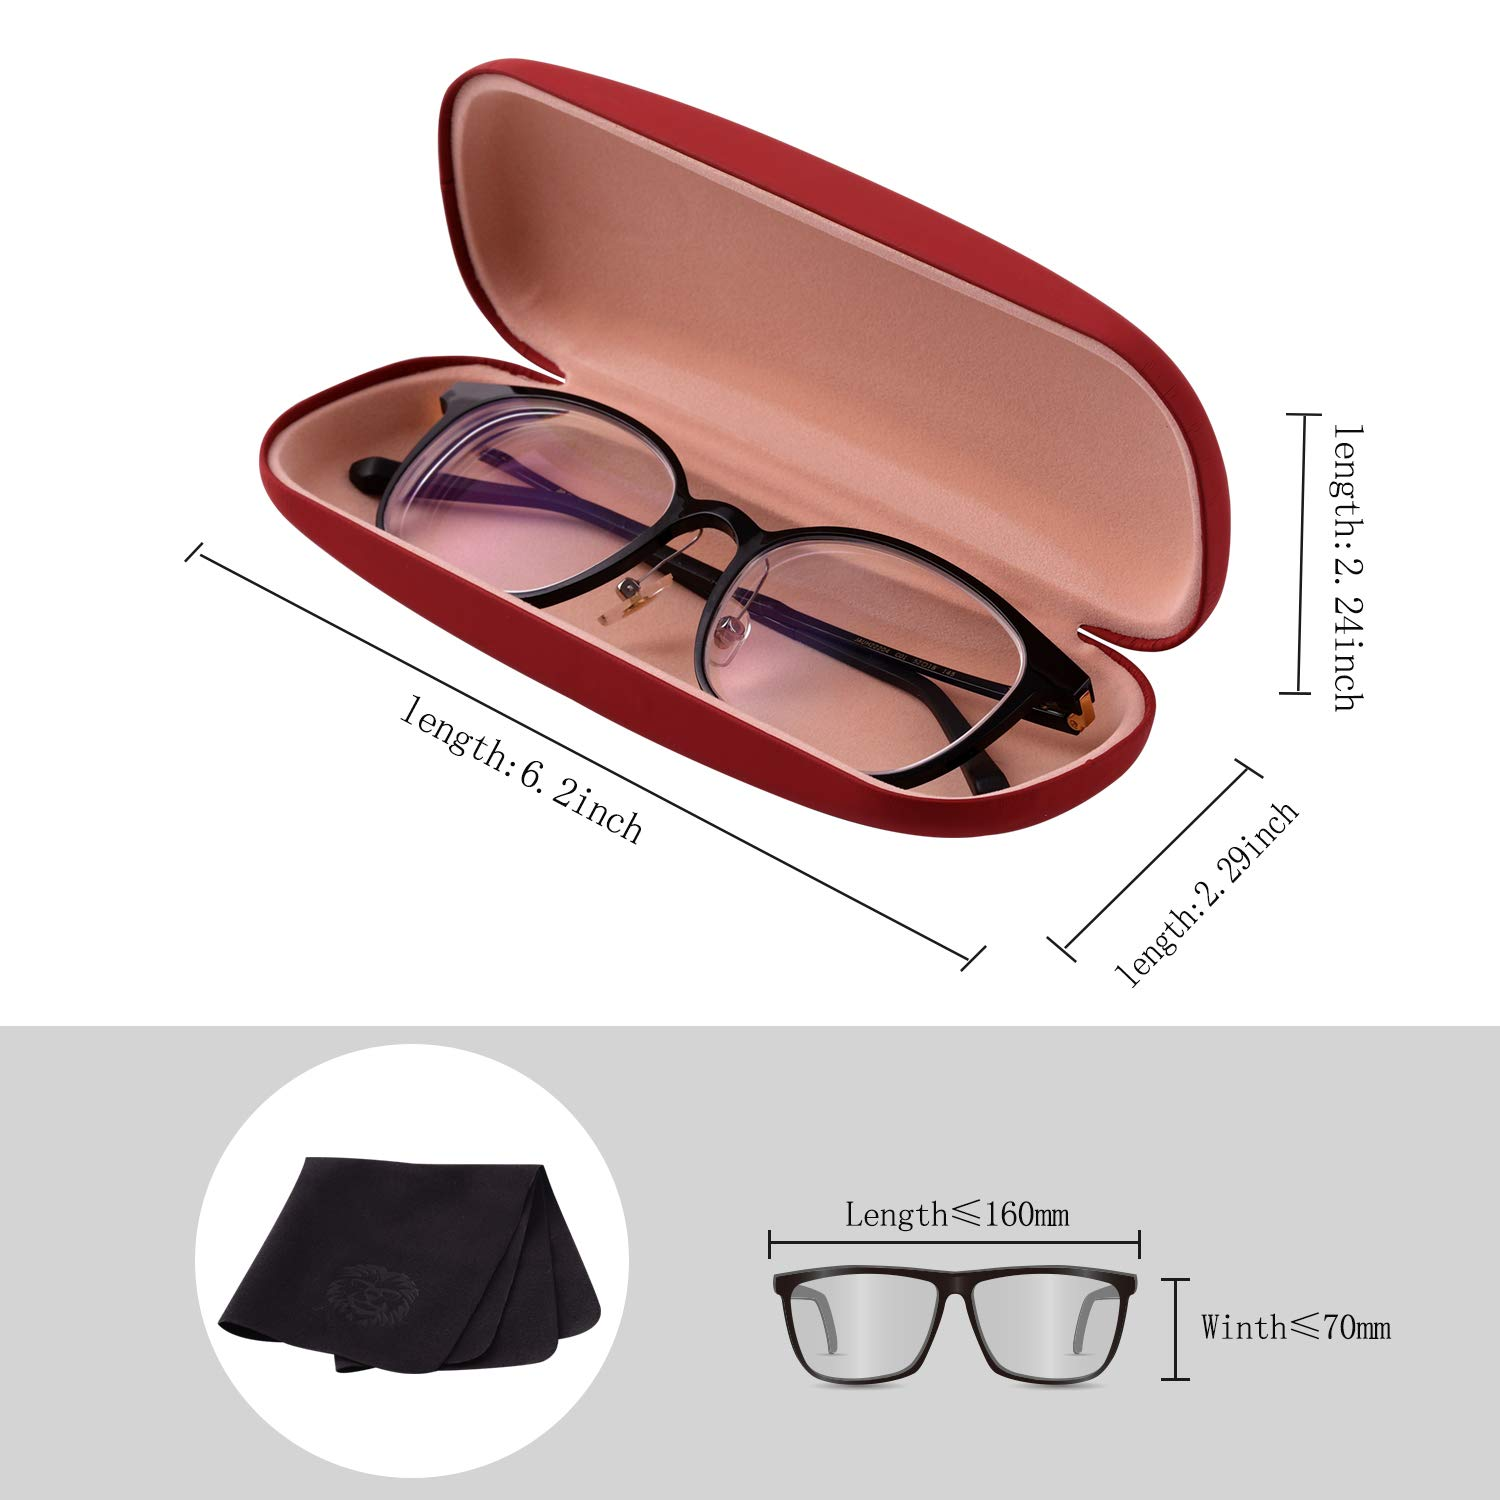 Hard Shell Eyeglasses Case,Smooth /& Glossy Finished Classic Protective Case for Reading Glasses